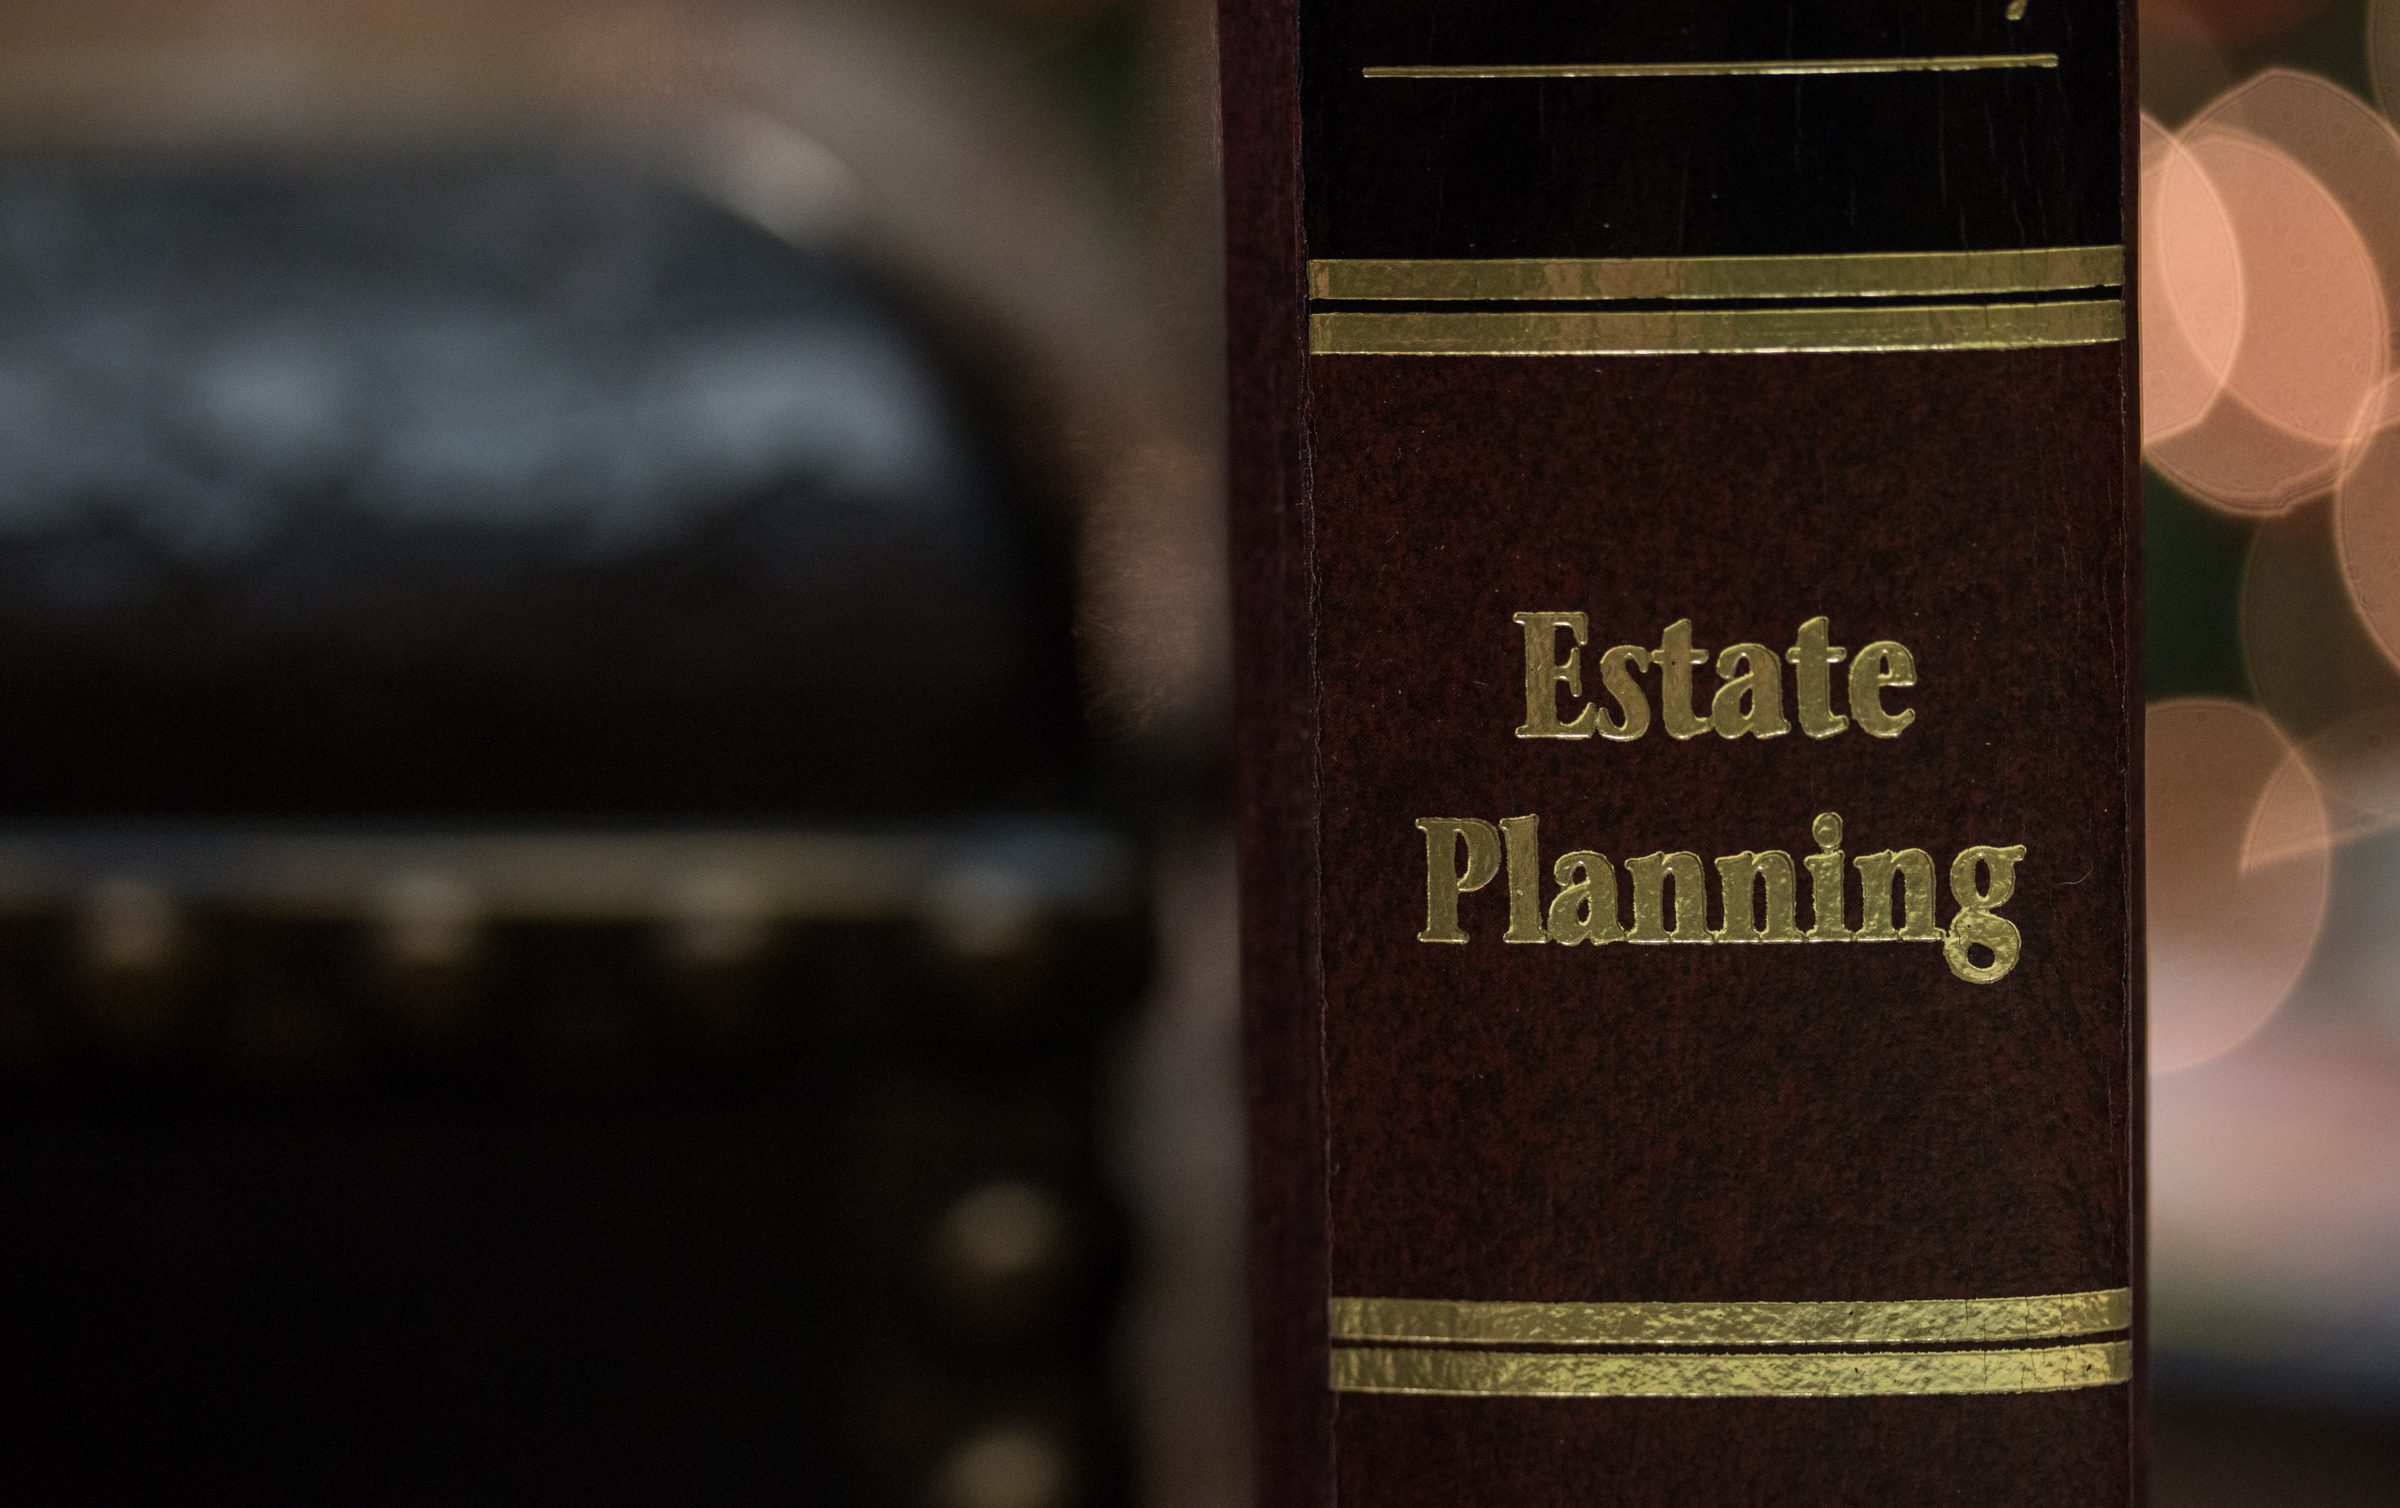 A photo of estate planning law book